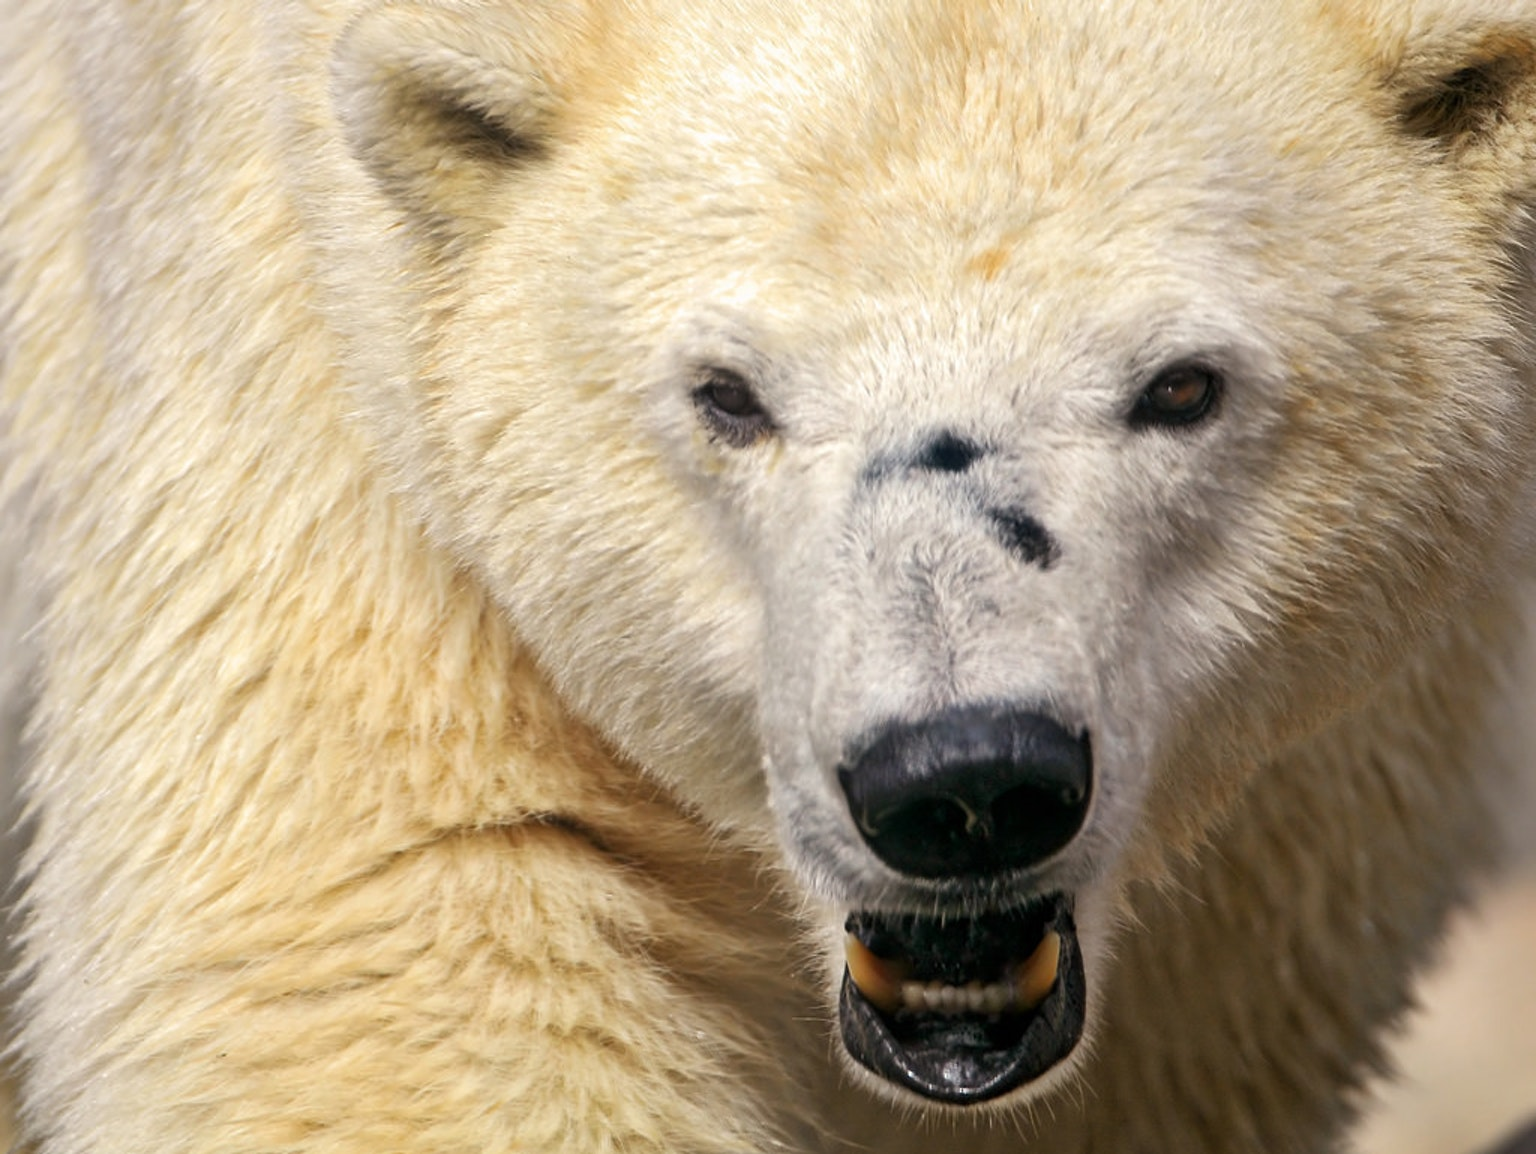 Expect More Polar Bear Sieges, Thanks to Climate Change